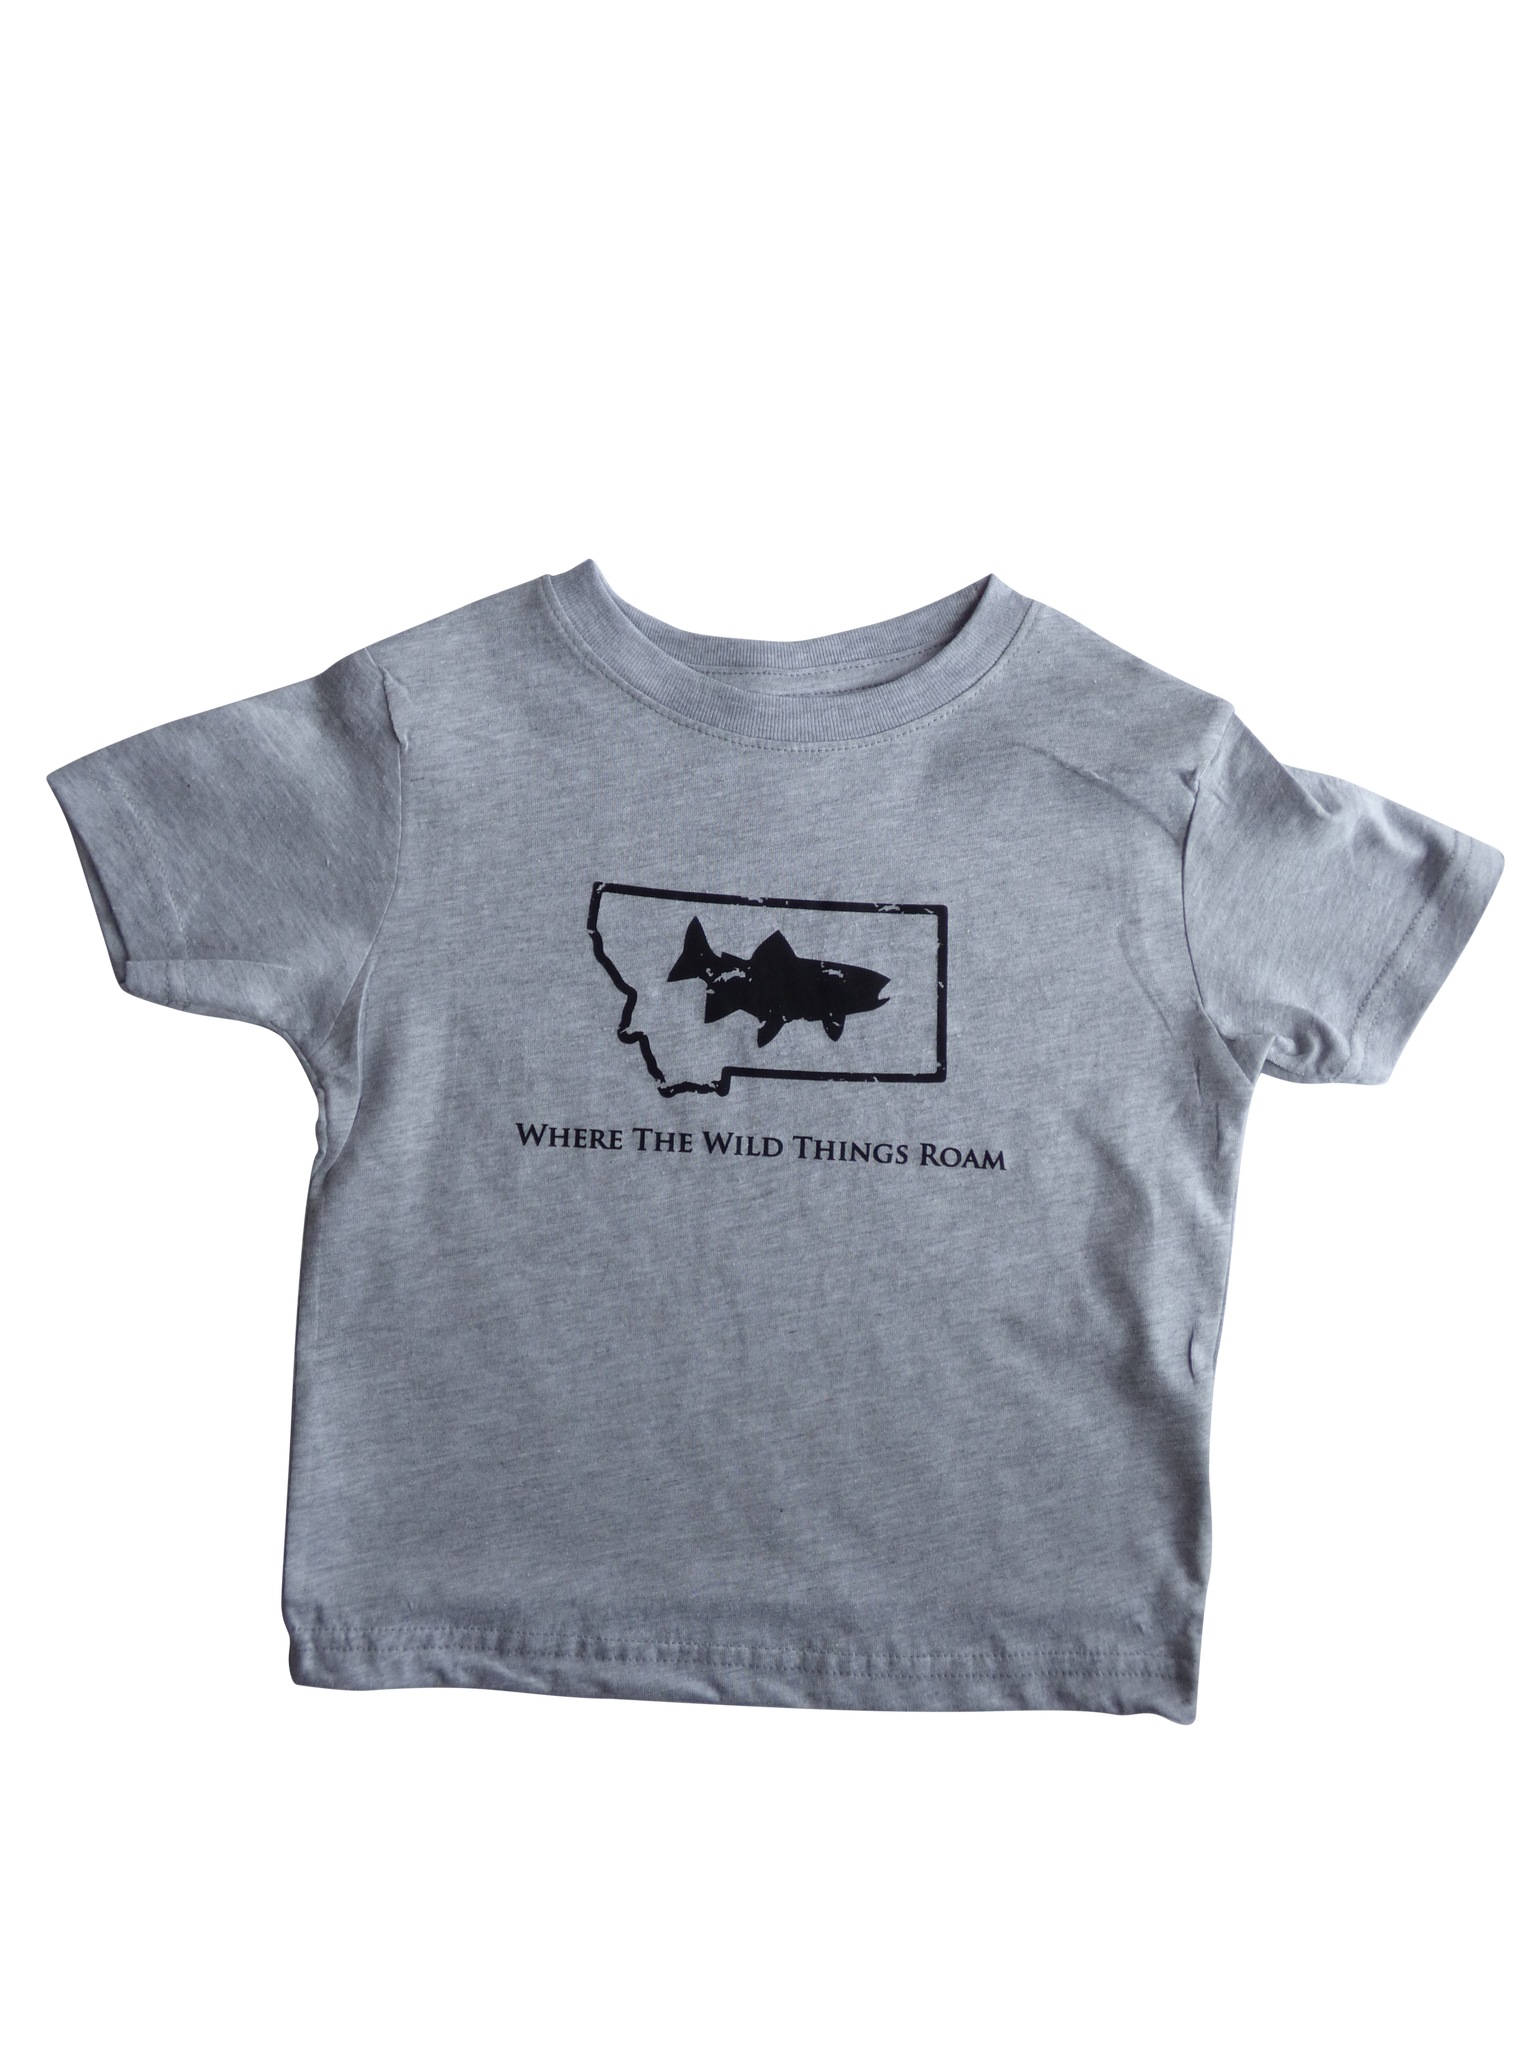 Wild Fish Infant/Toddler Shirt